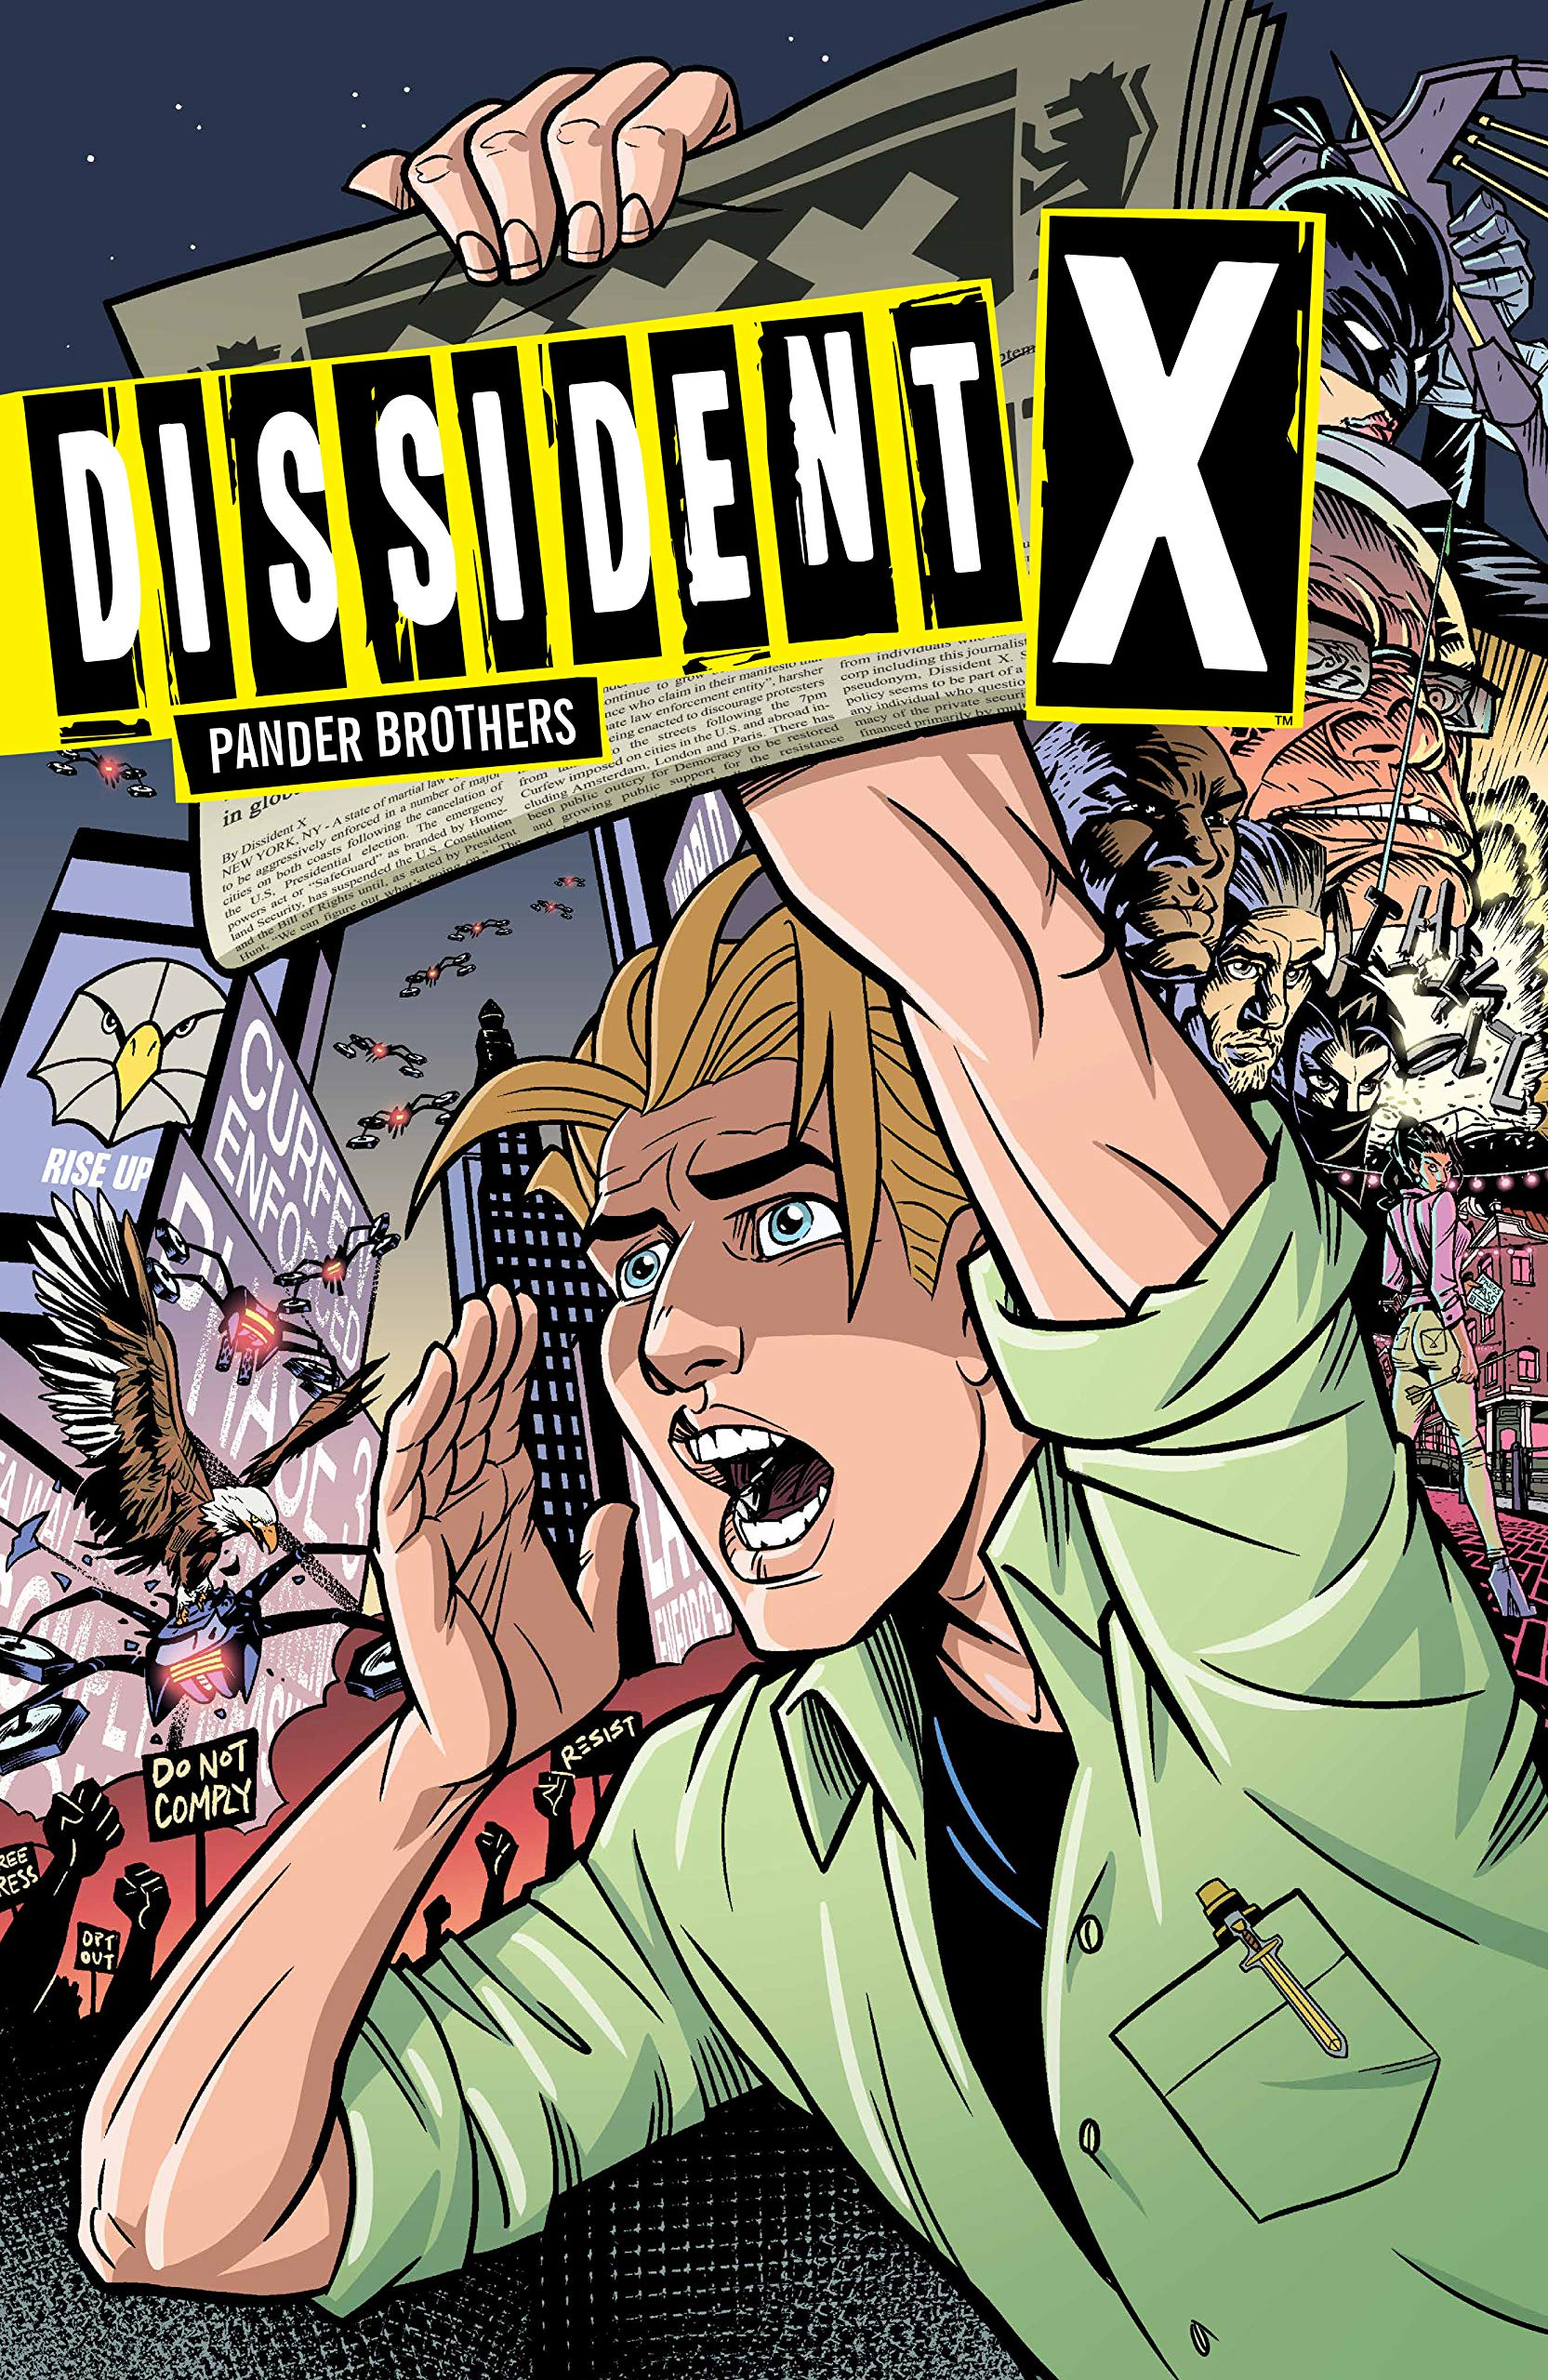 DISSIDENT X GRAPHIC NOVEL COMING NOVEMBER 2019